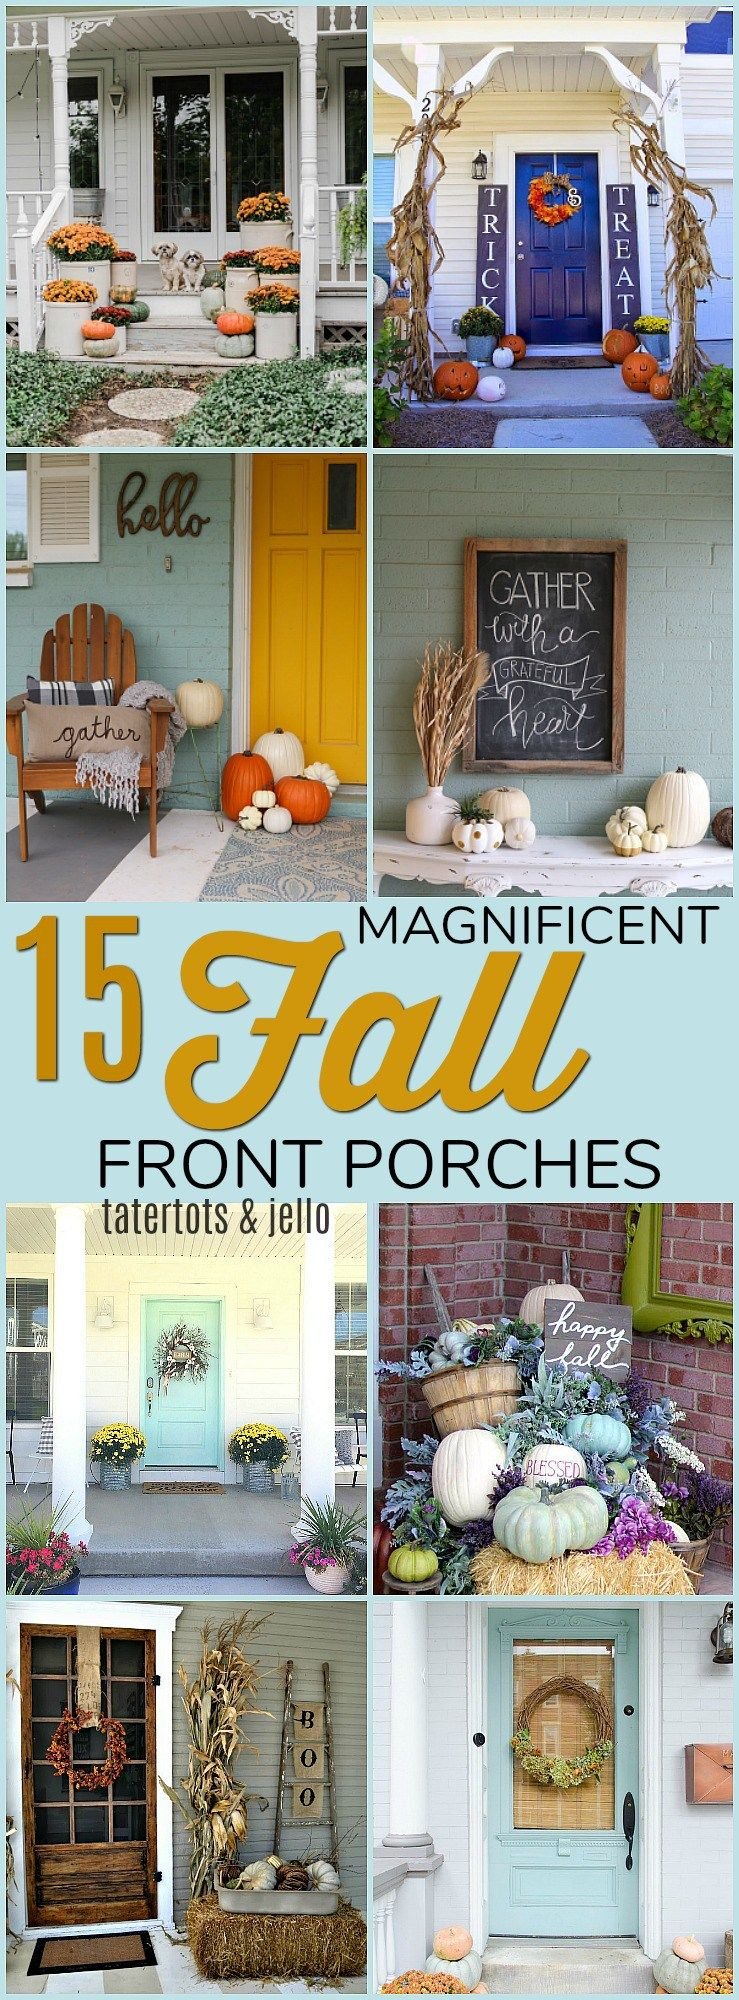 15 Magnificent Fall Front Porches. Make YOUR Front Door SHINE With These  Festive Fall Ideas